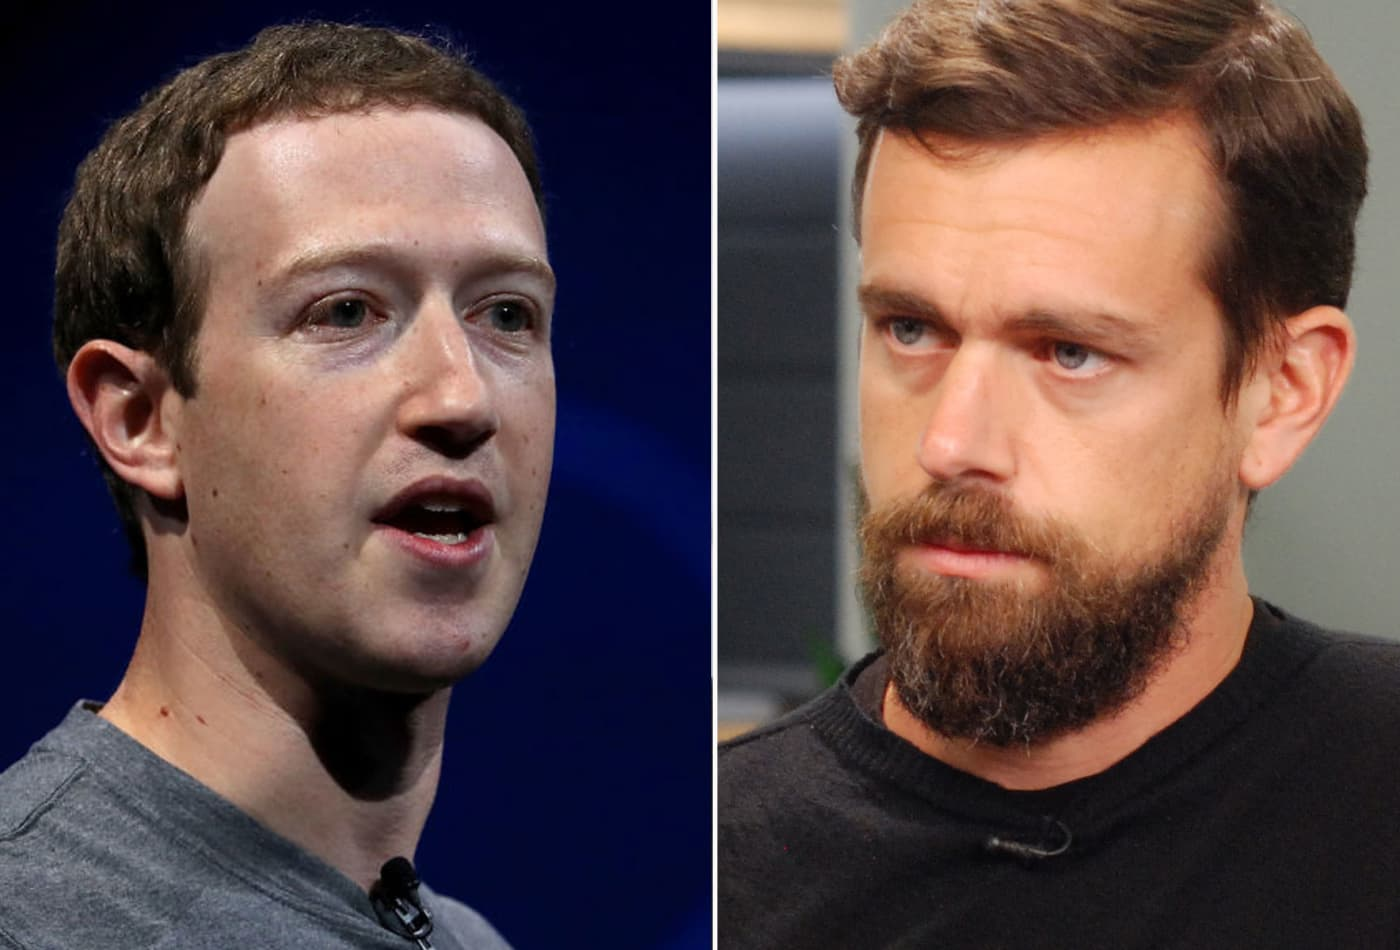 Mark Zuckerberg vs. Jack Dorsey is the most interesting battle in Silicon Valley